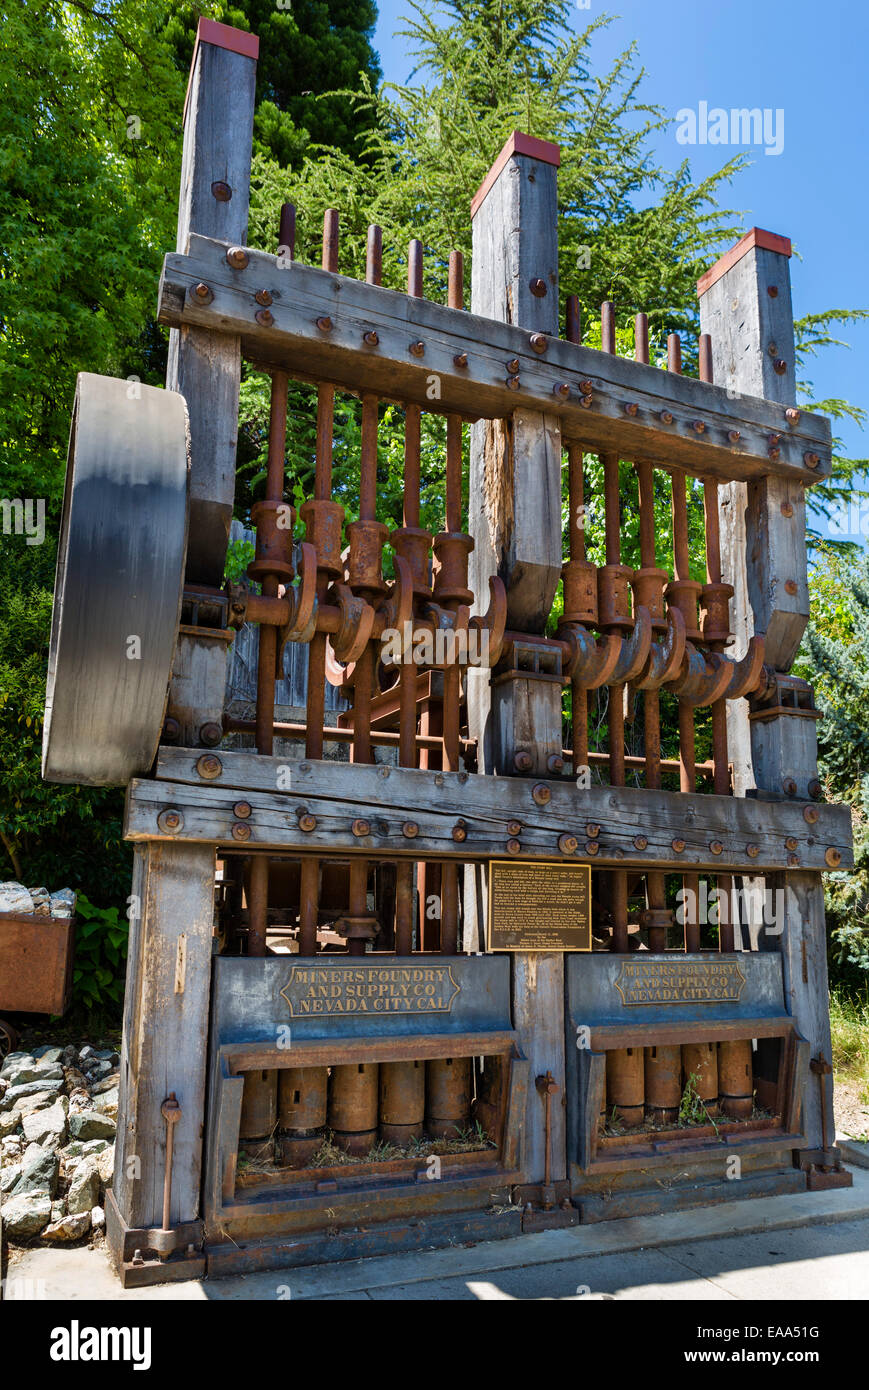 An old 10 Stamp Mill, used in gold mining, Nevada City, Northern Gold Country, California, USA - Stock Image